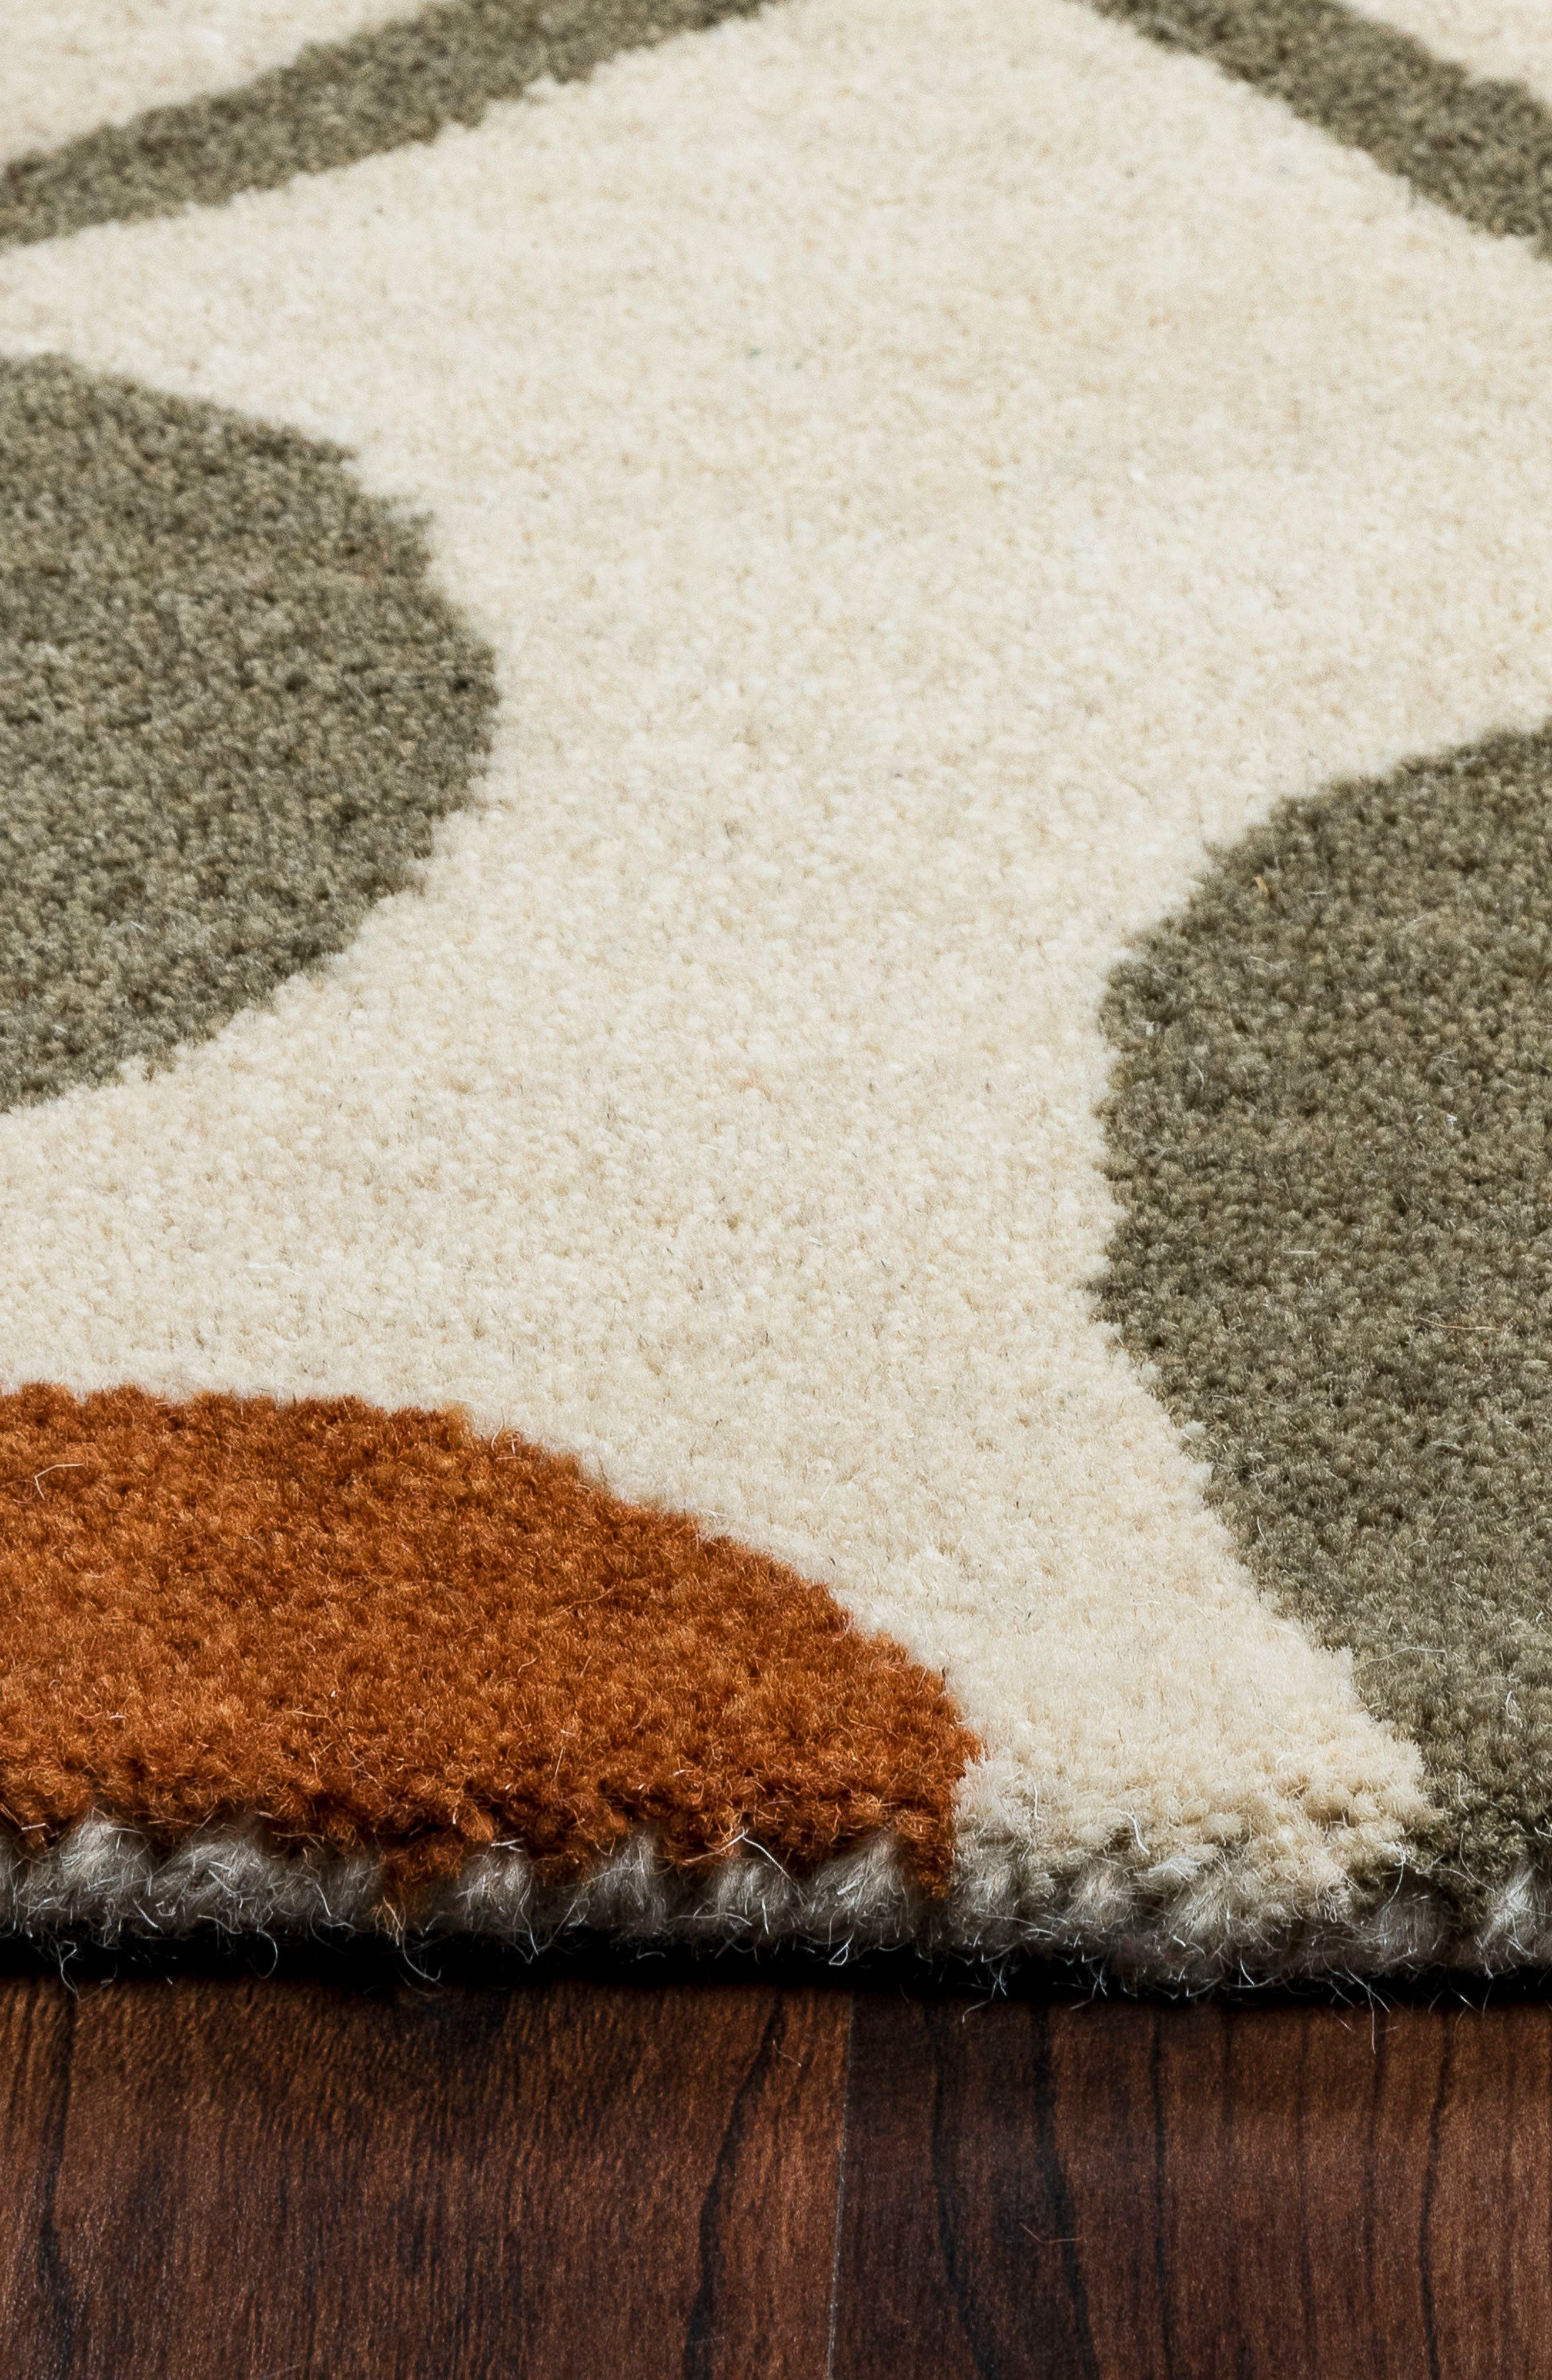 Zoe Hand Tufted Wool Area Rug,                             Alternate thumbnail 2, color,                             900